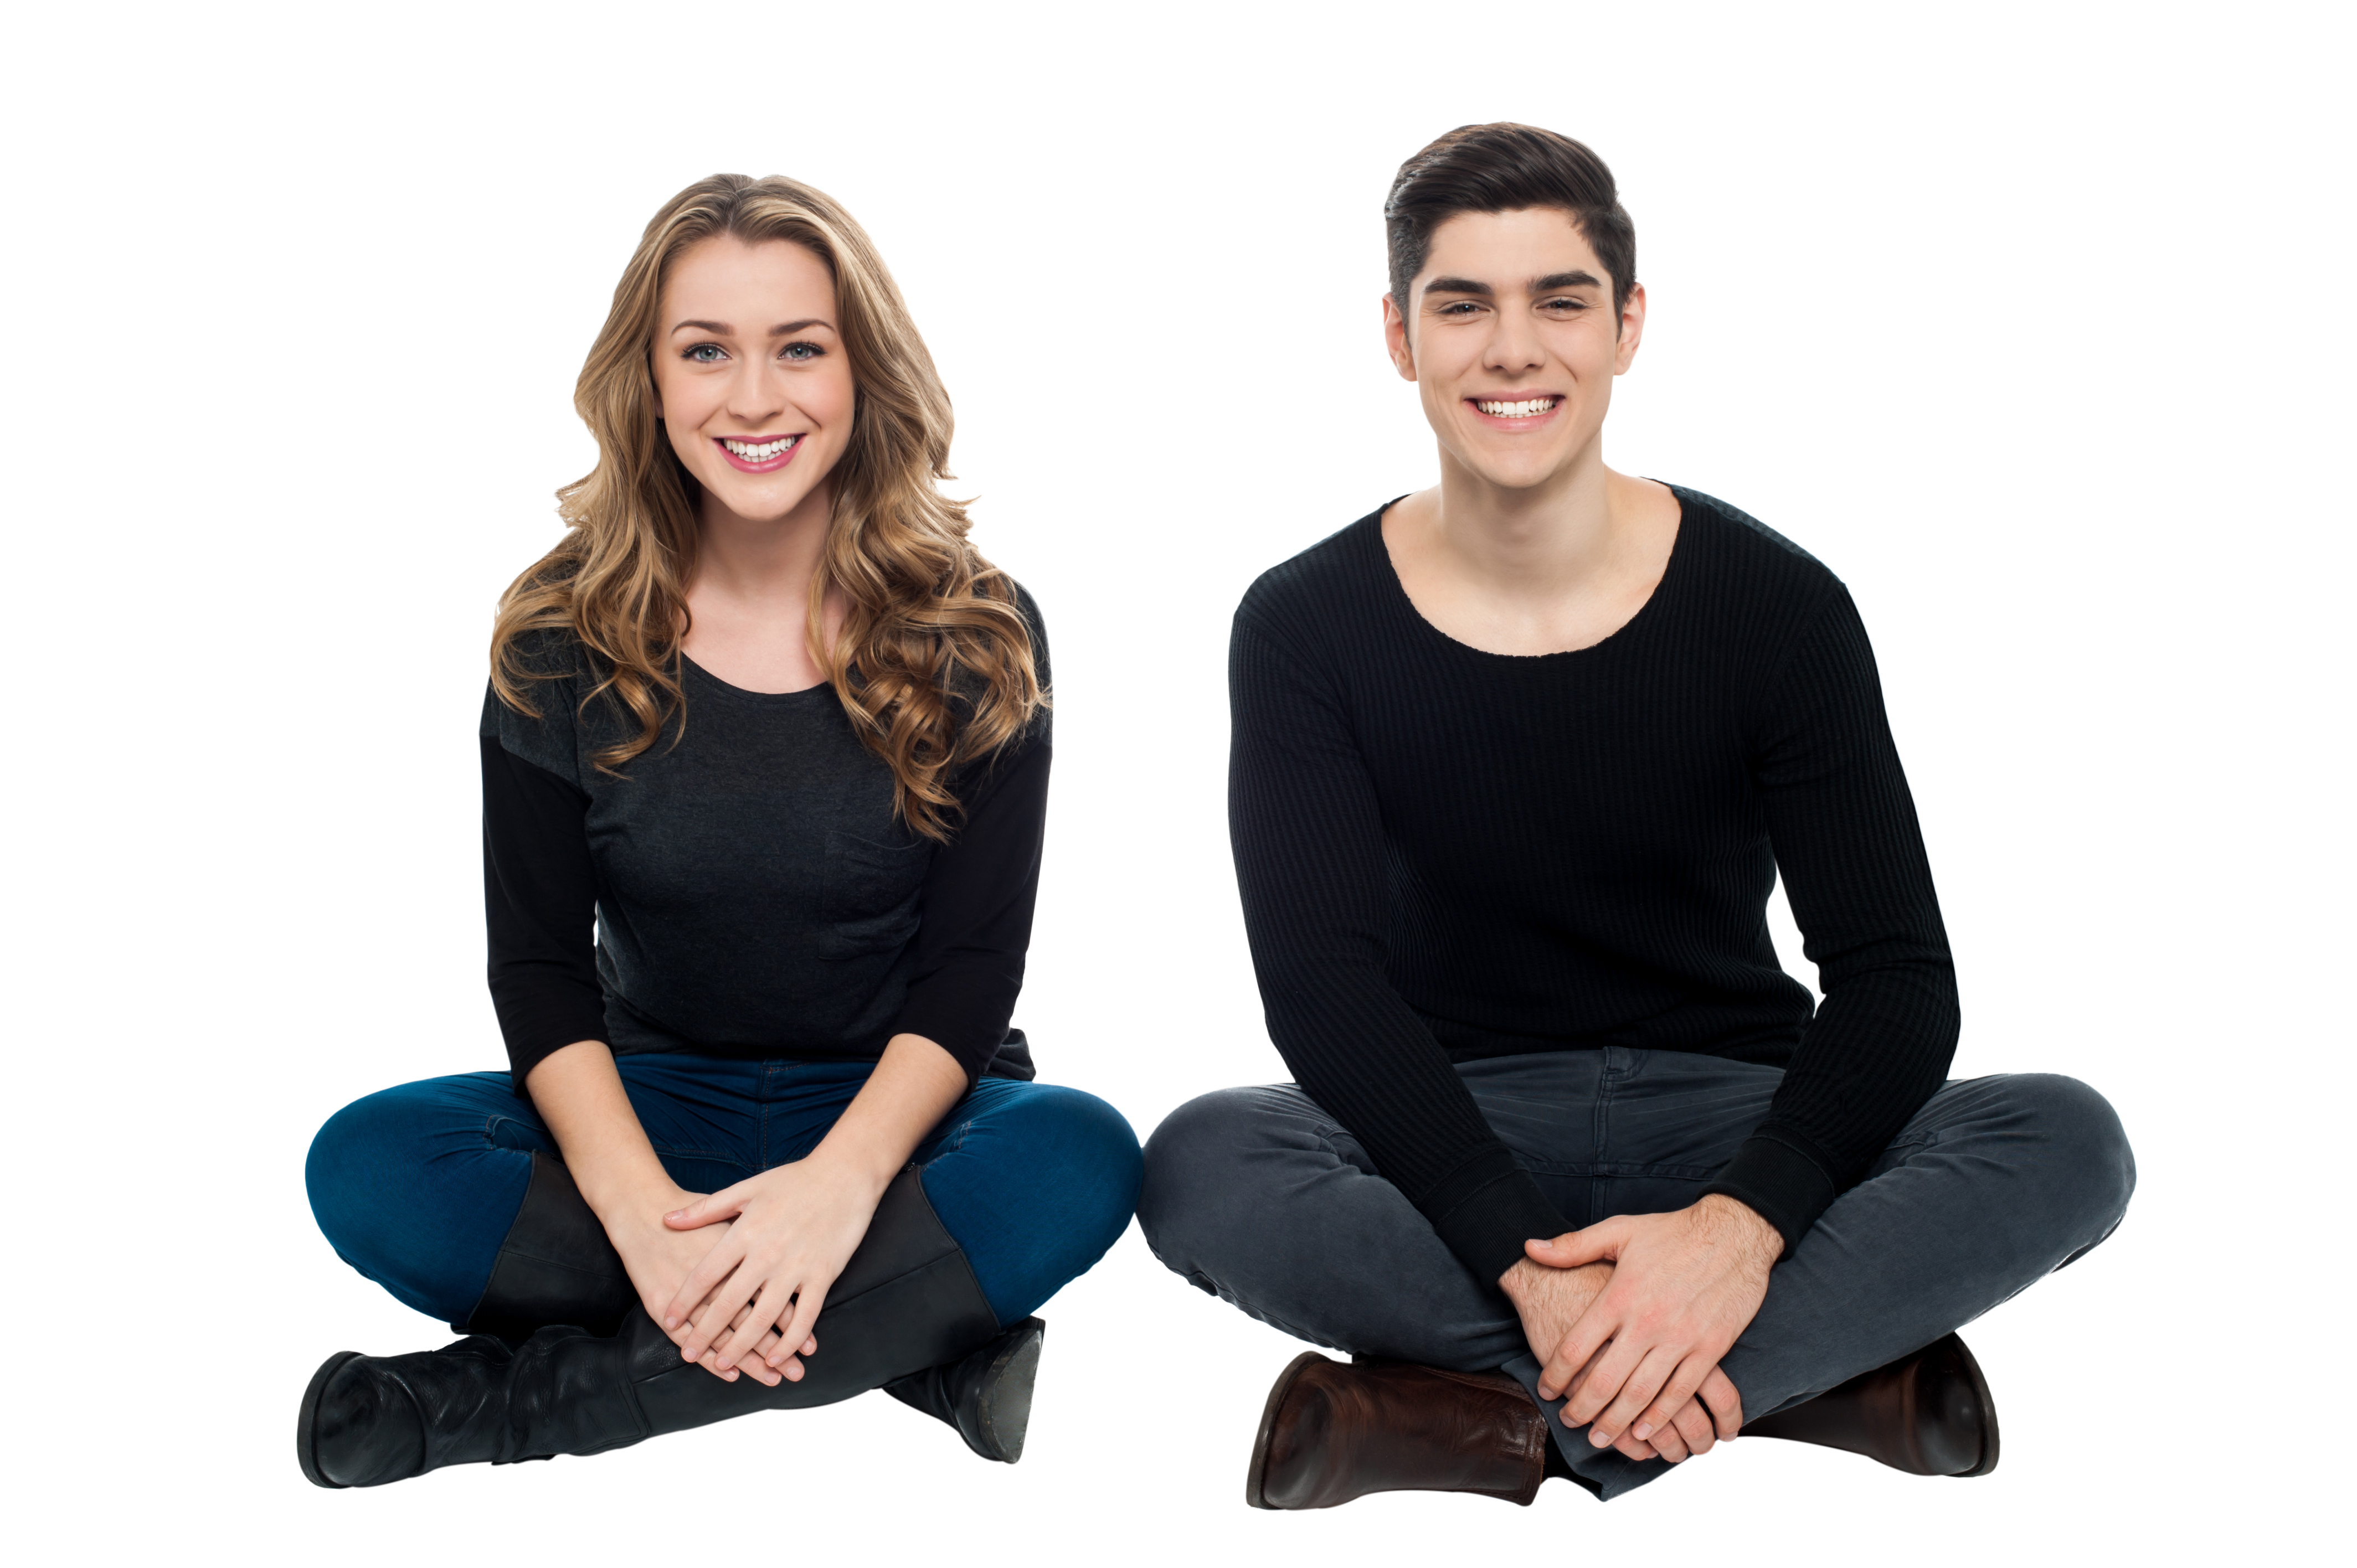 Couple sitting png. Image purepng free transparent